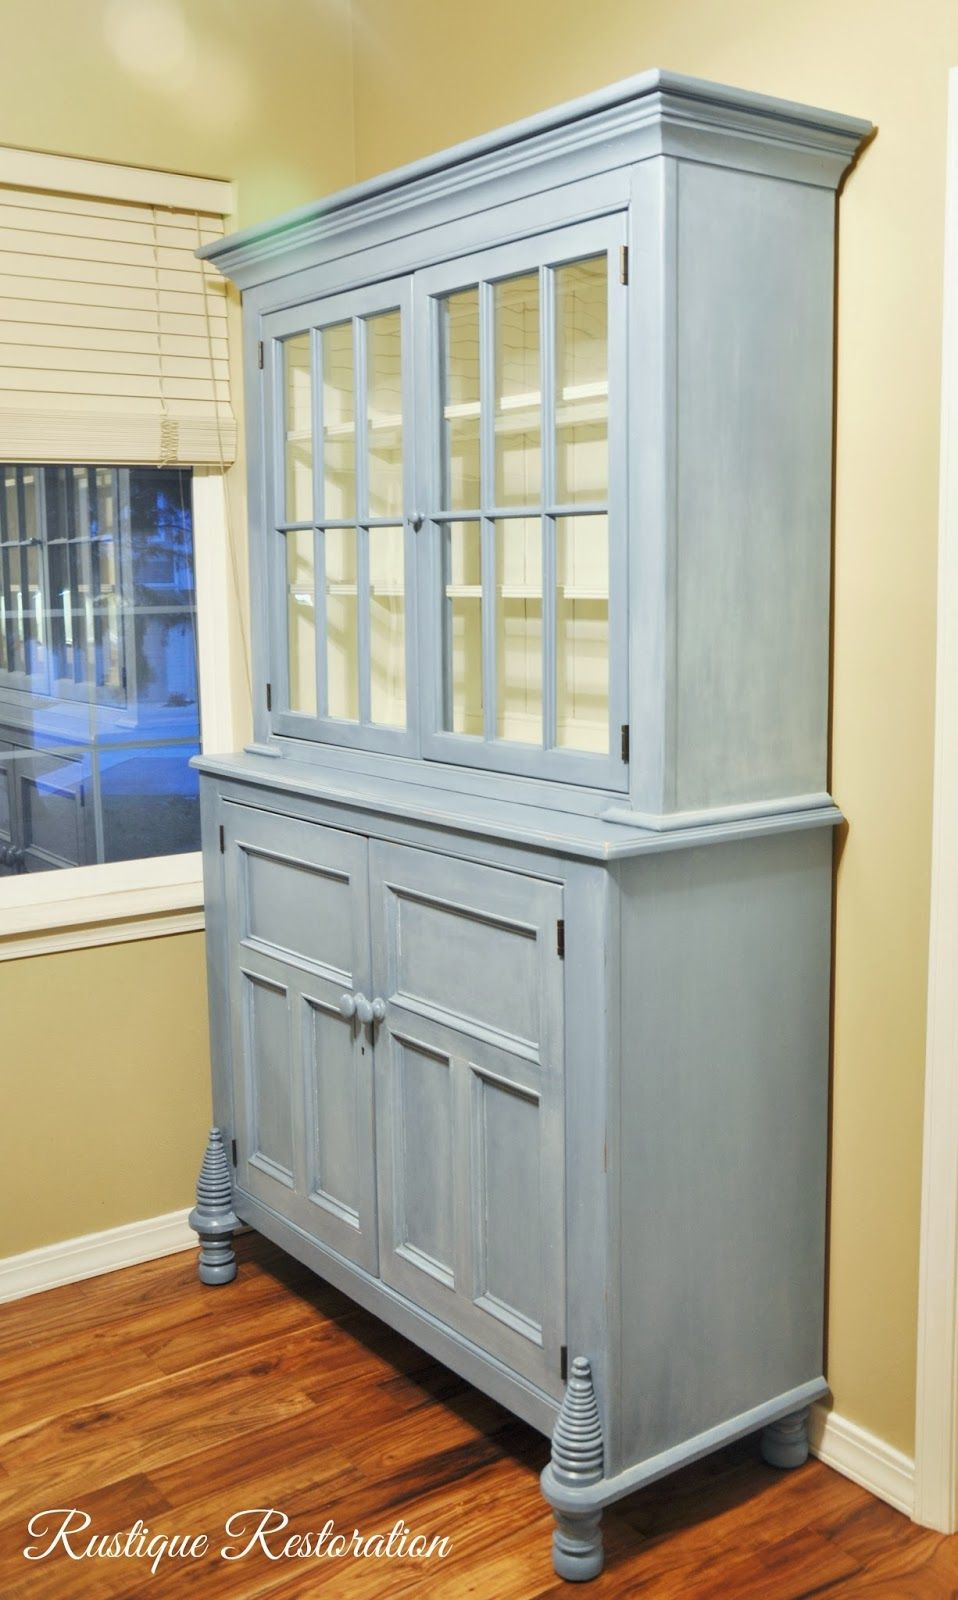 Rustique Restoration: Gorgeous French Country Hutch Makeover | For ...